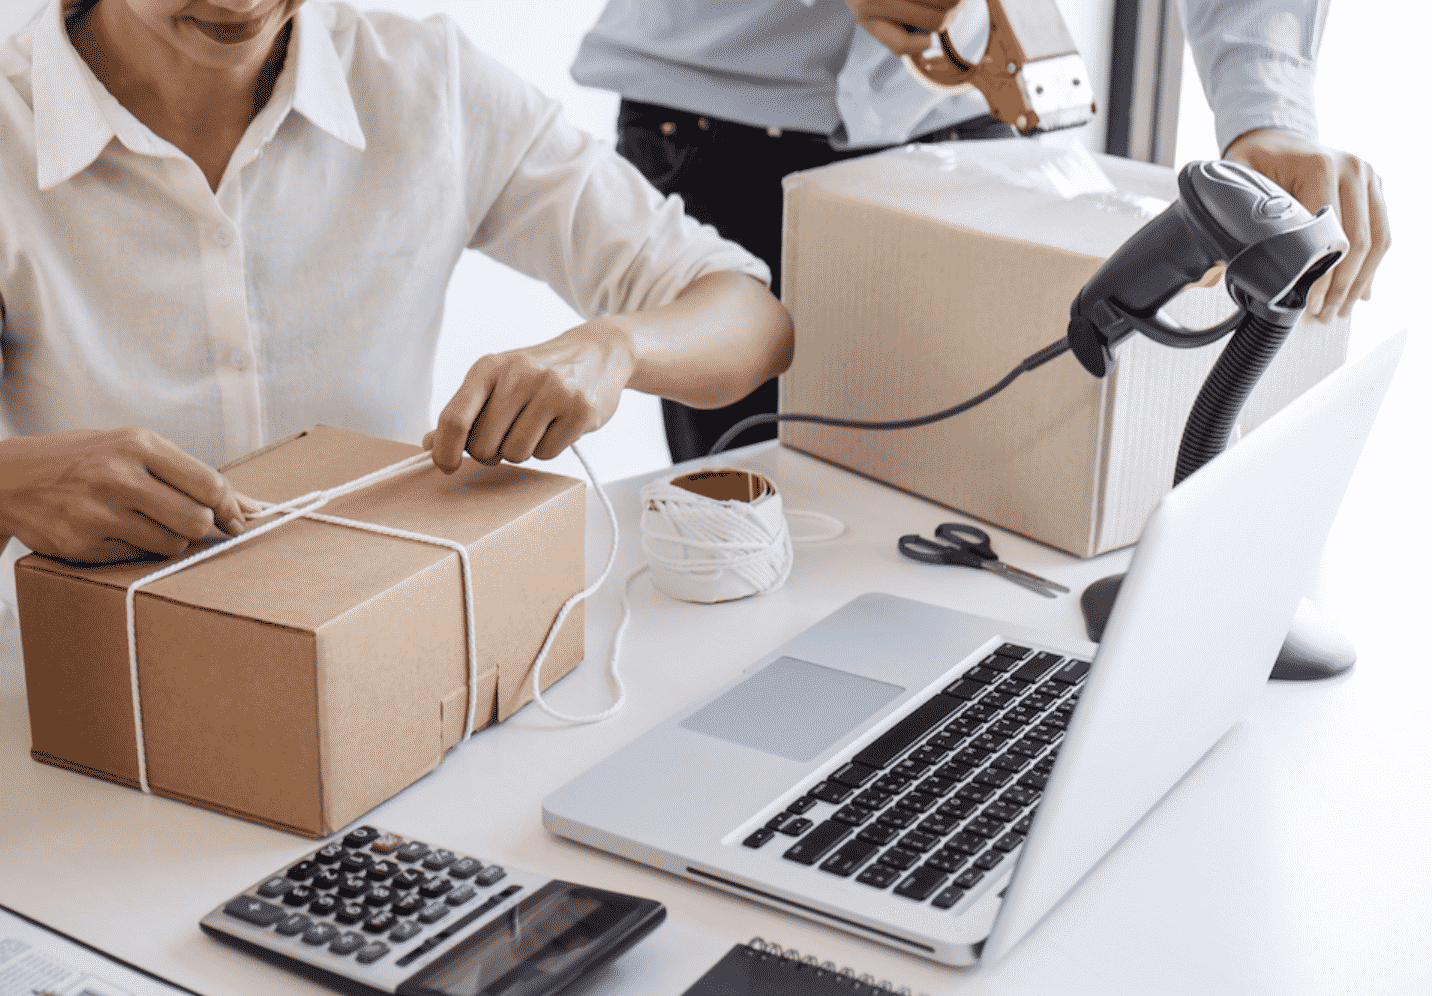 5 Benefits of Using Inventory Management Software